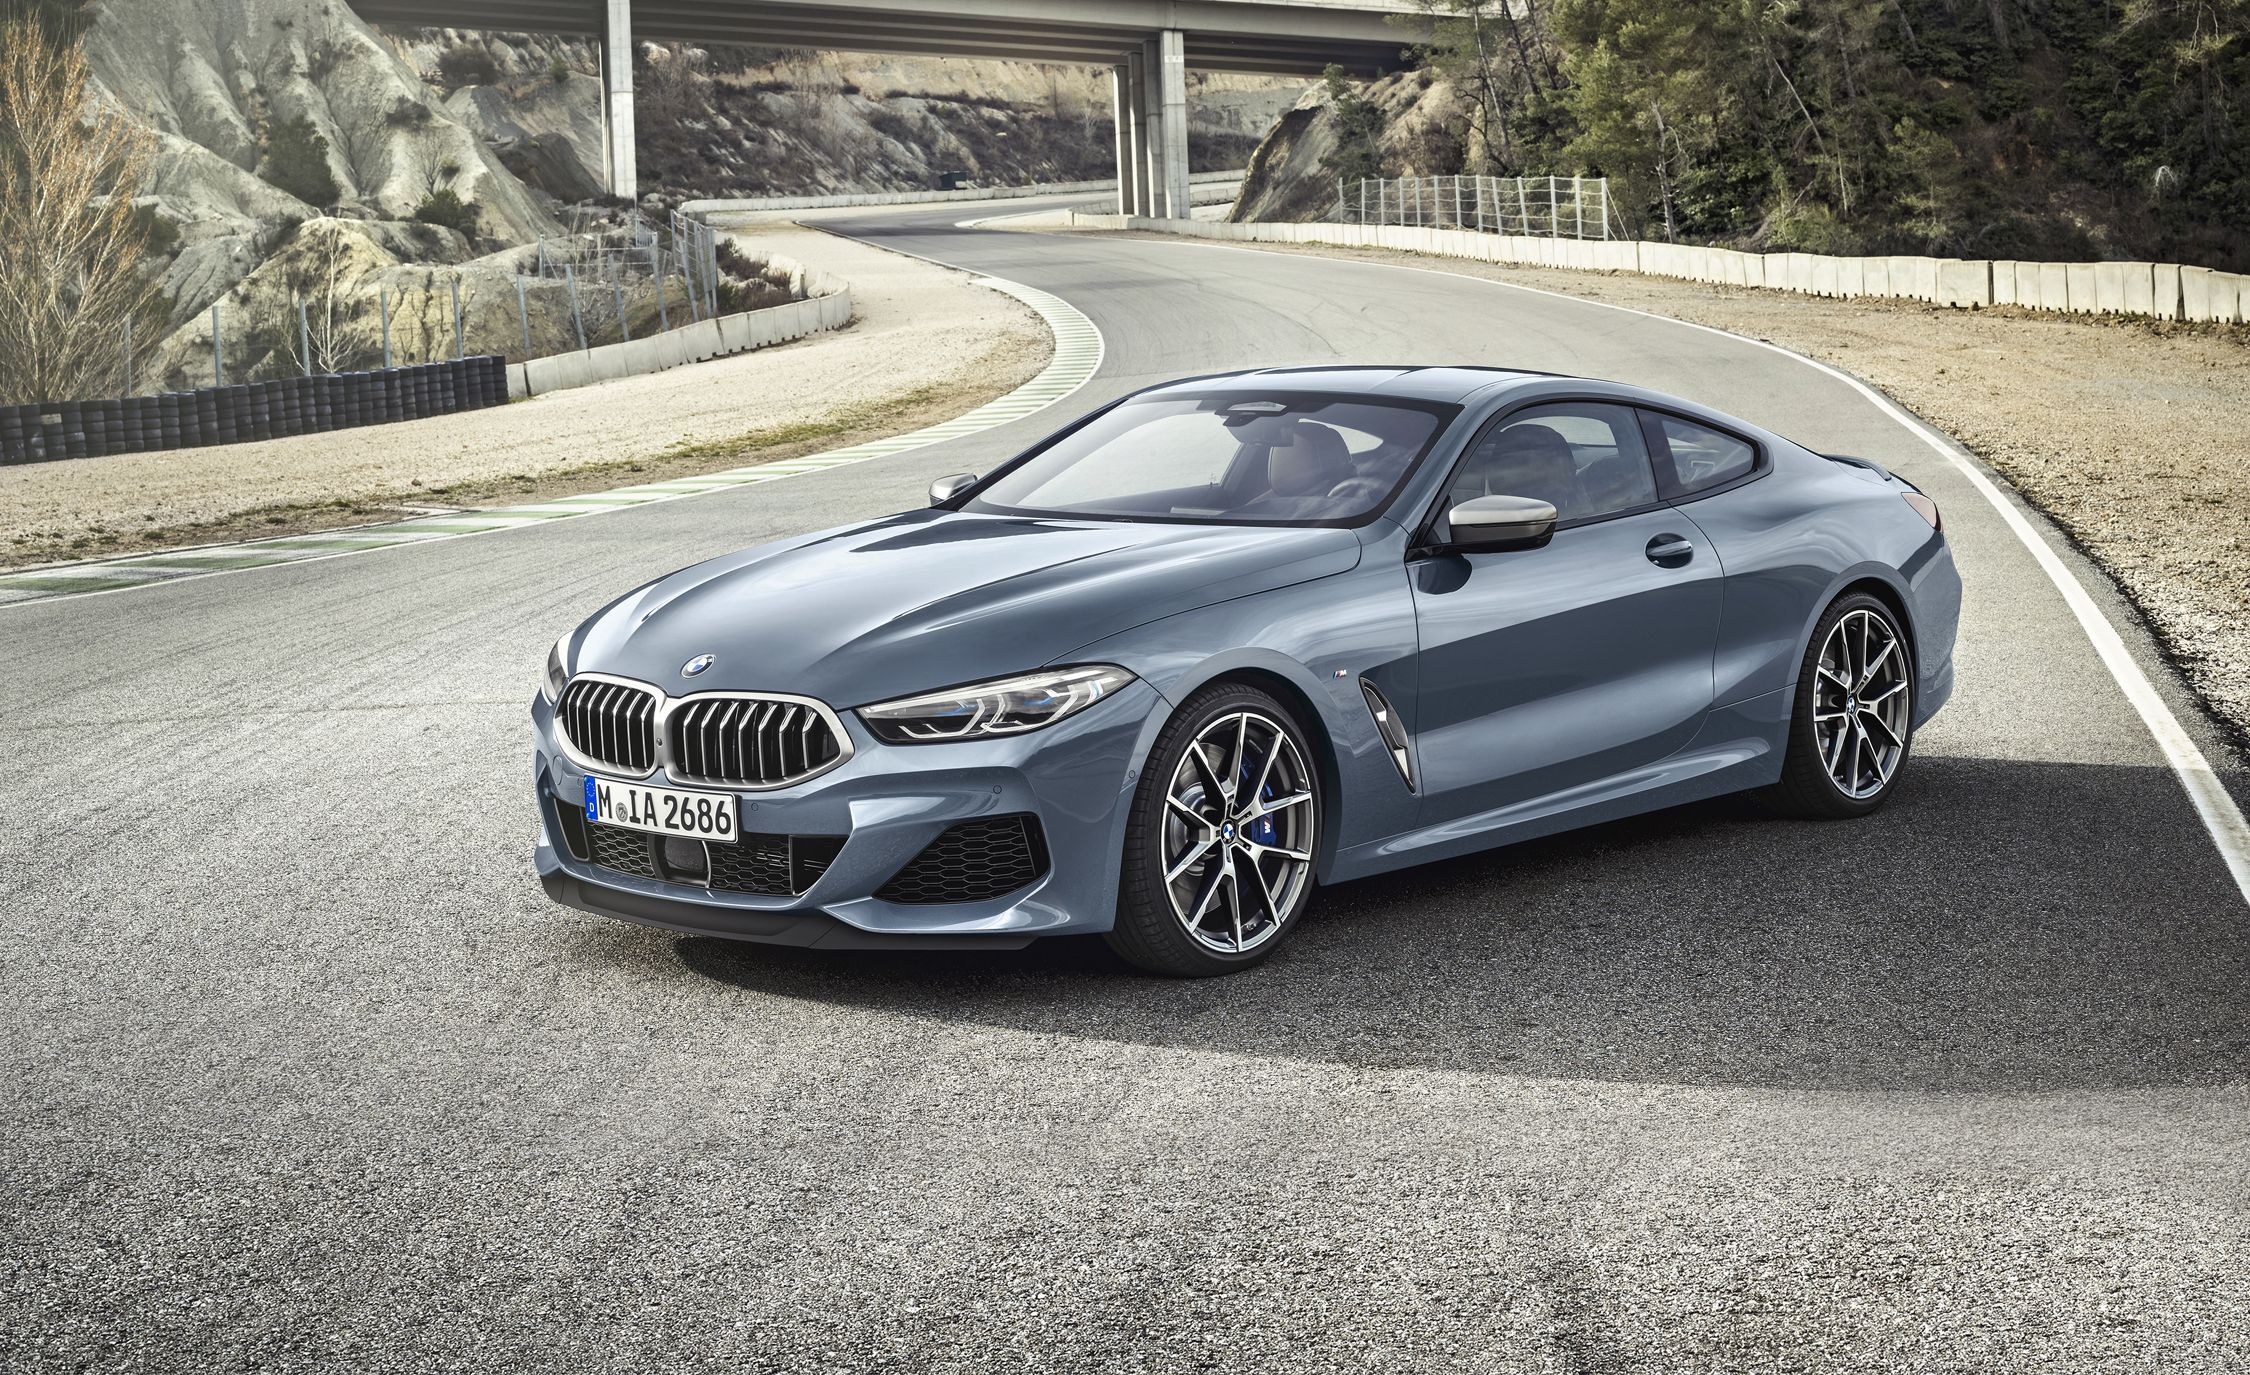 2019 Bmw M850i Xdrive Photos And Info Echoes Of History